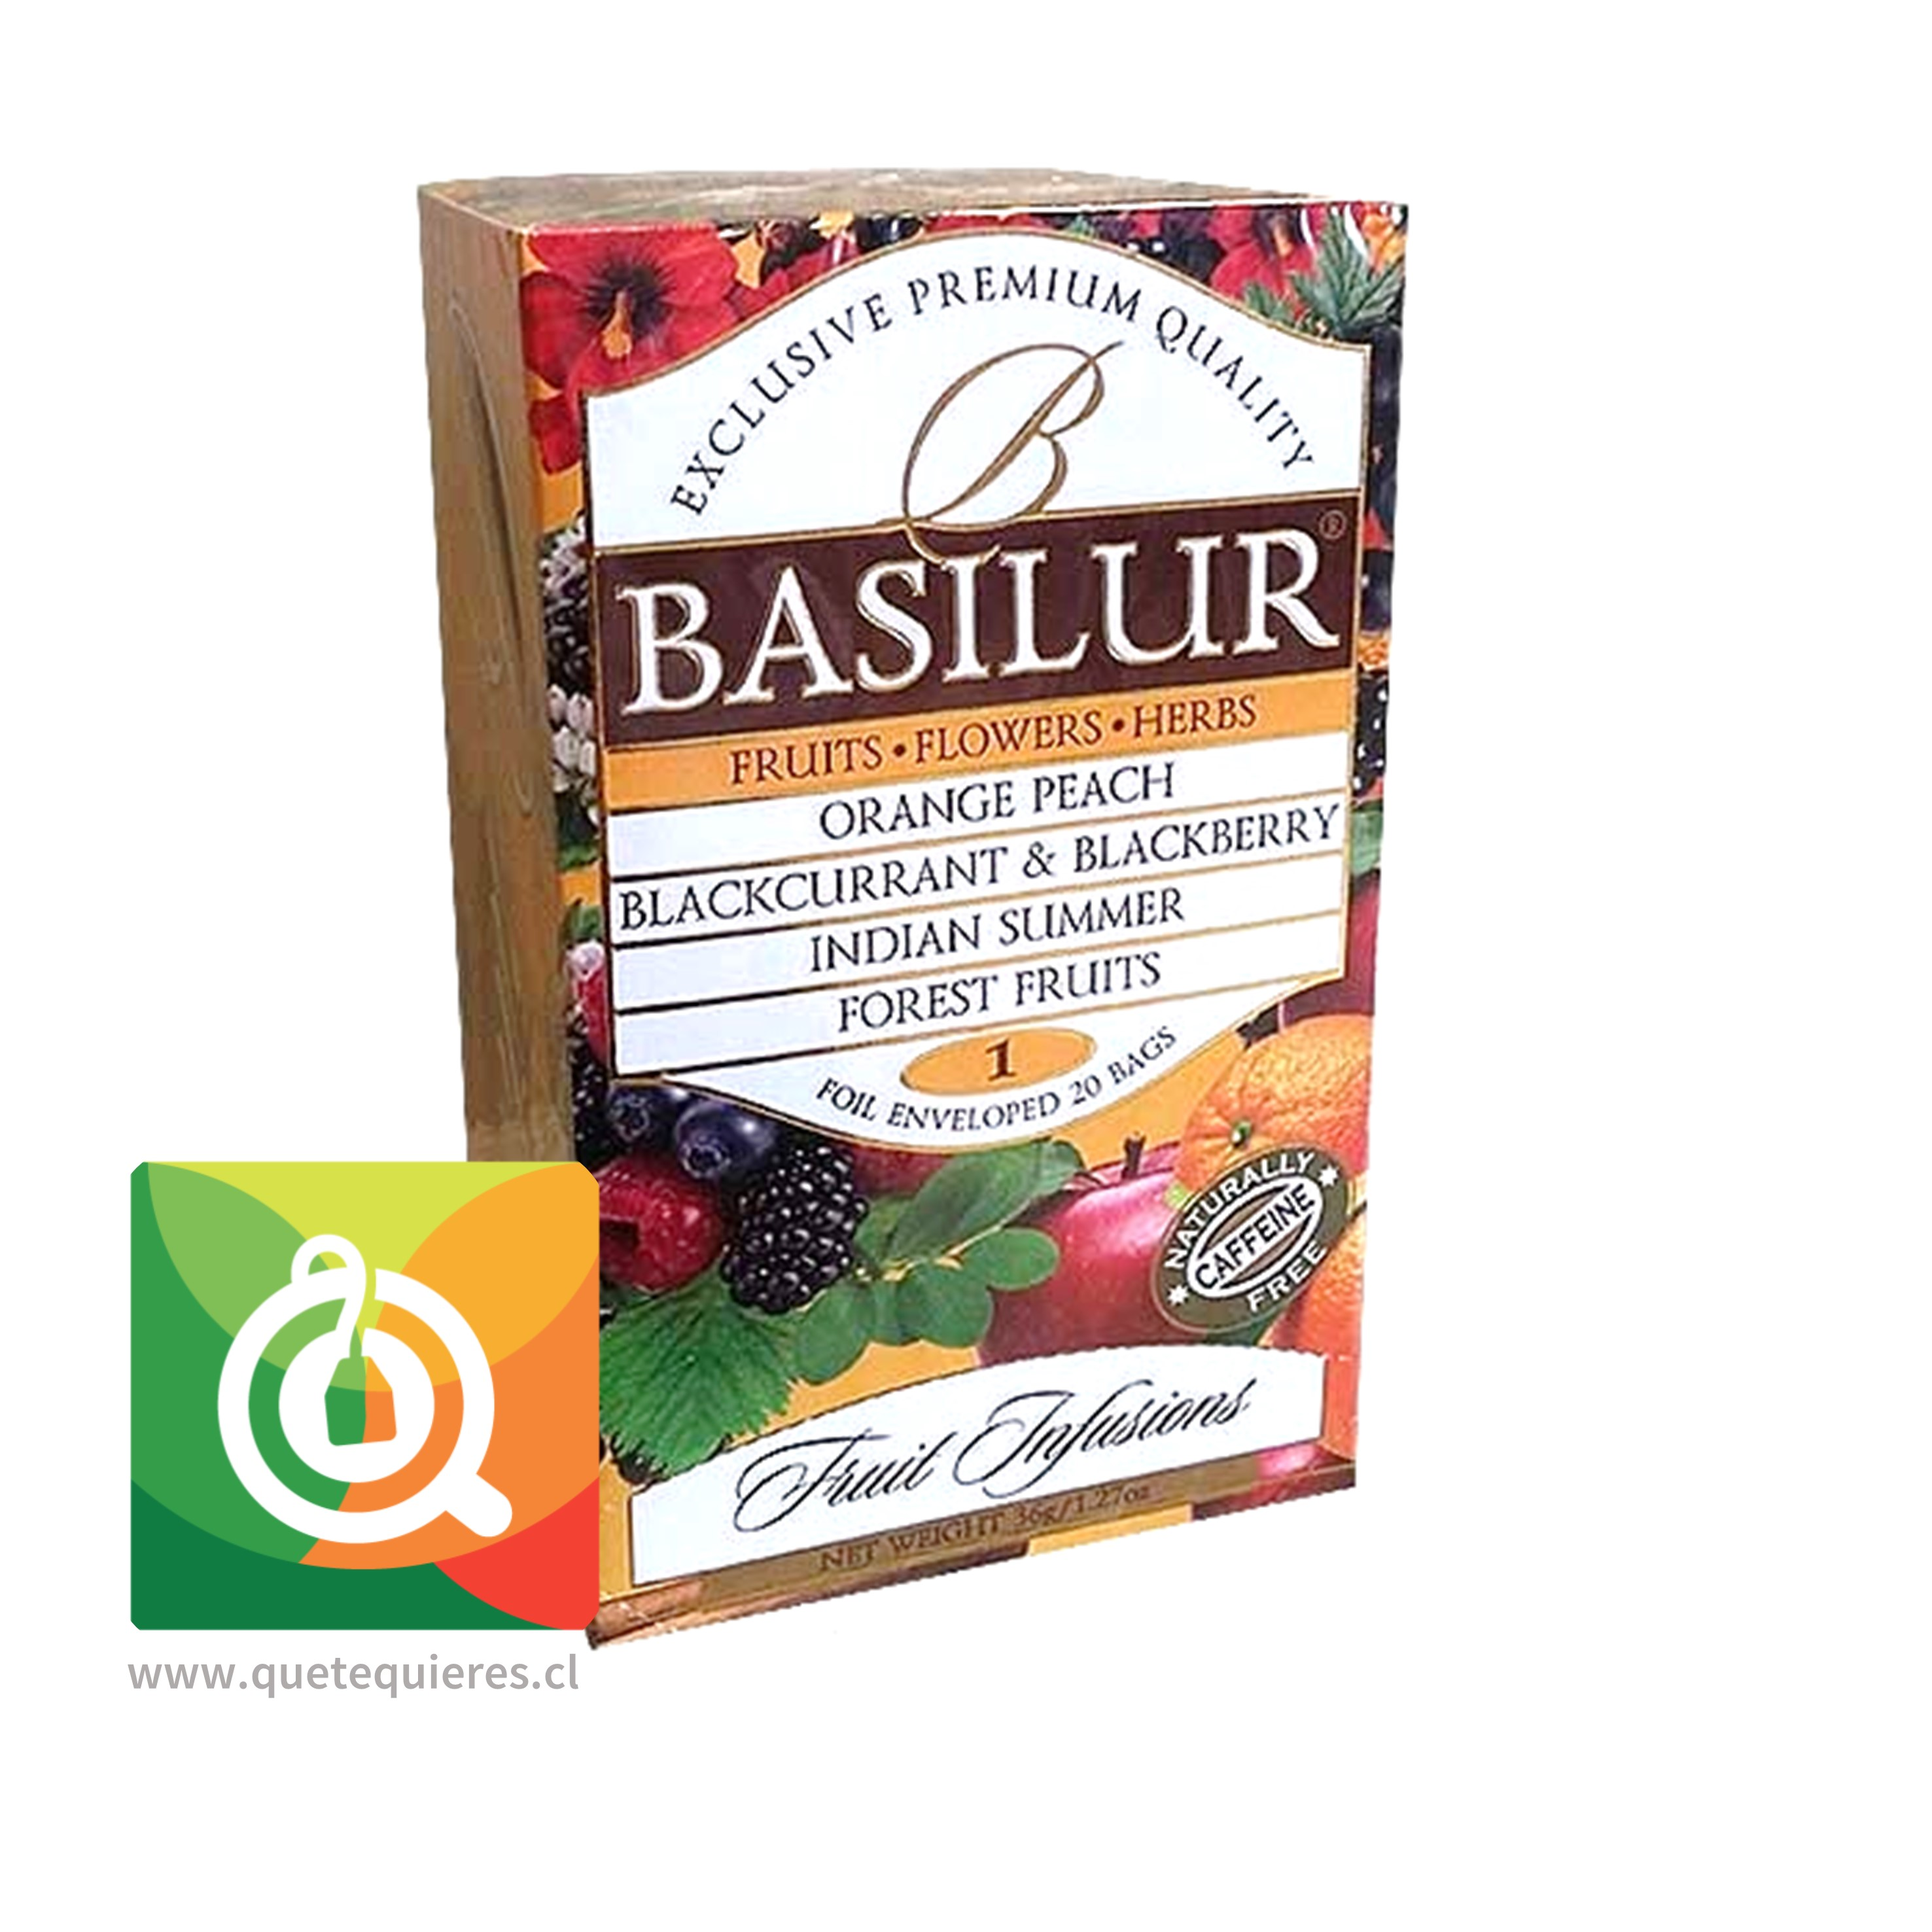 Basilur Surtido de Infusiones Frutales - Fruits, Flowers & Herbs Fruit Infusión vol. 1